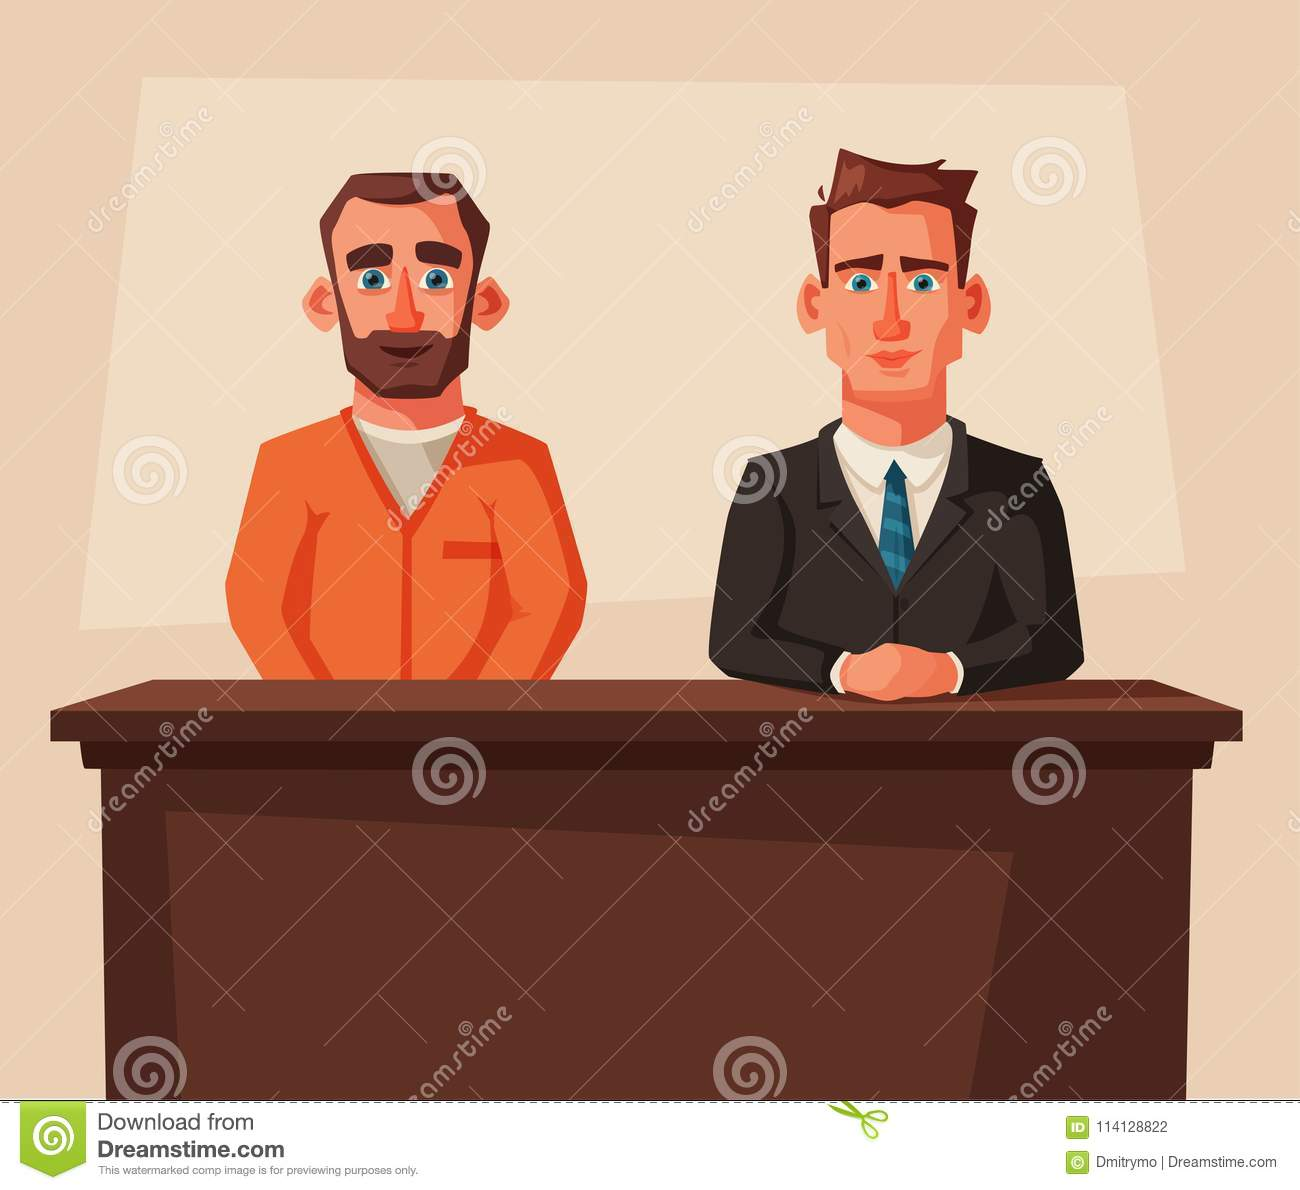 Serious lawyer sits by the table in courthouse with defendant. Cartoon  vector illustration. Character